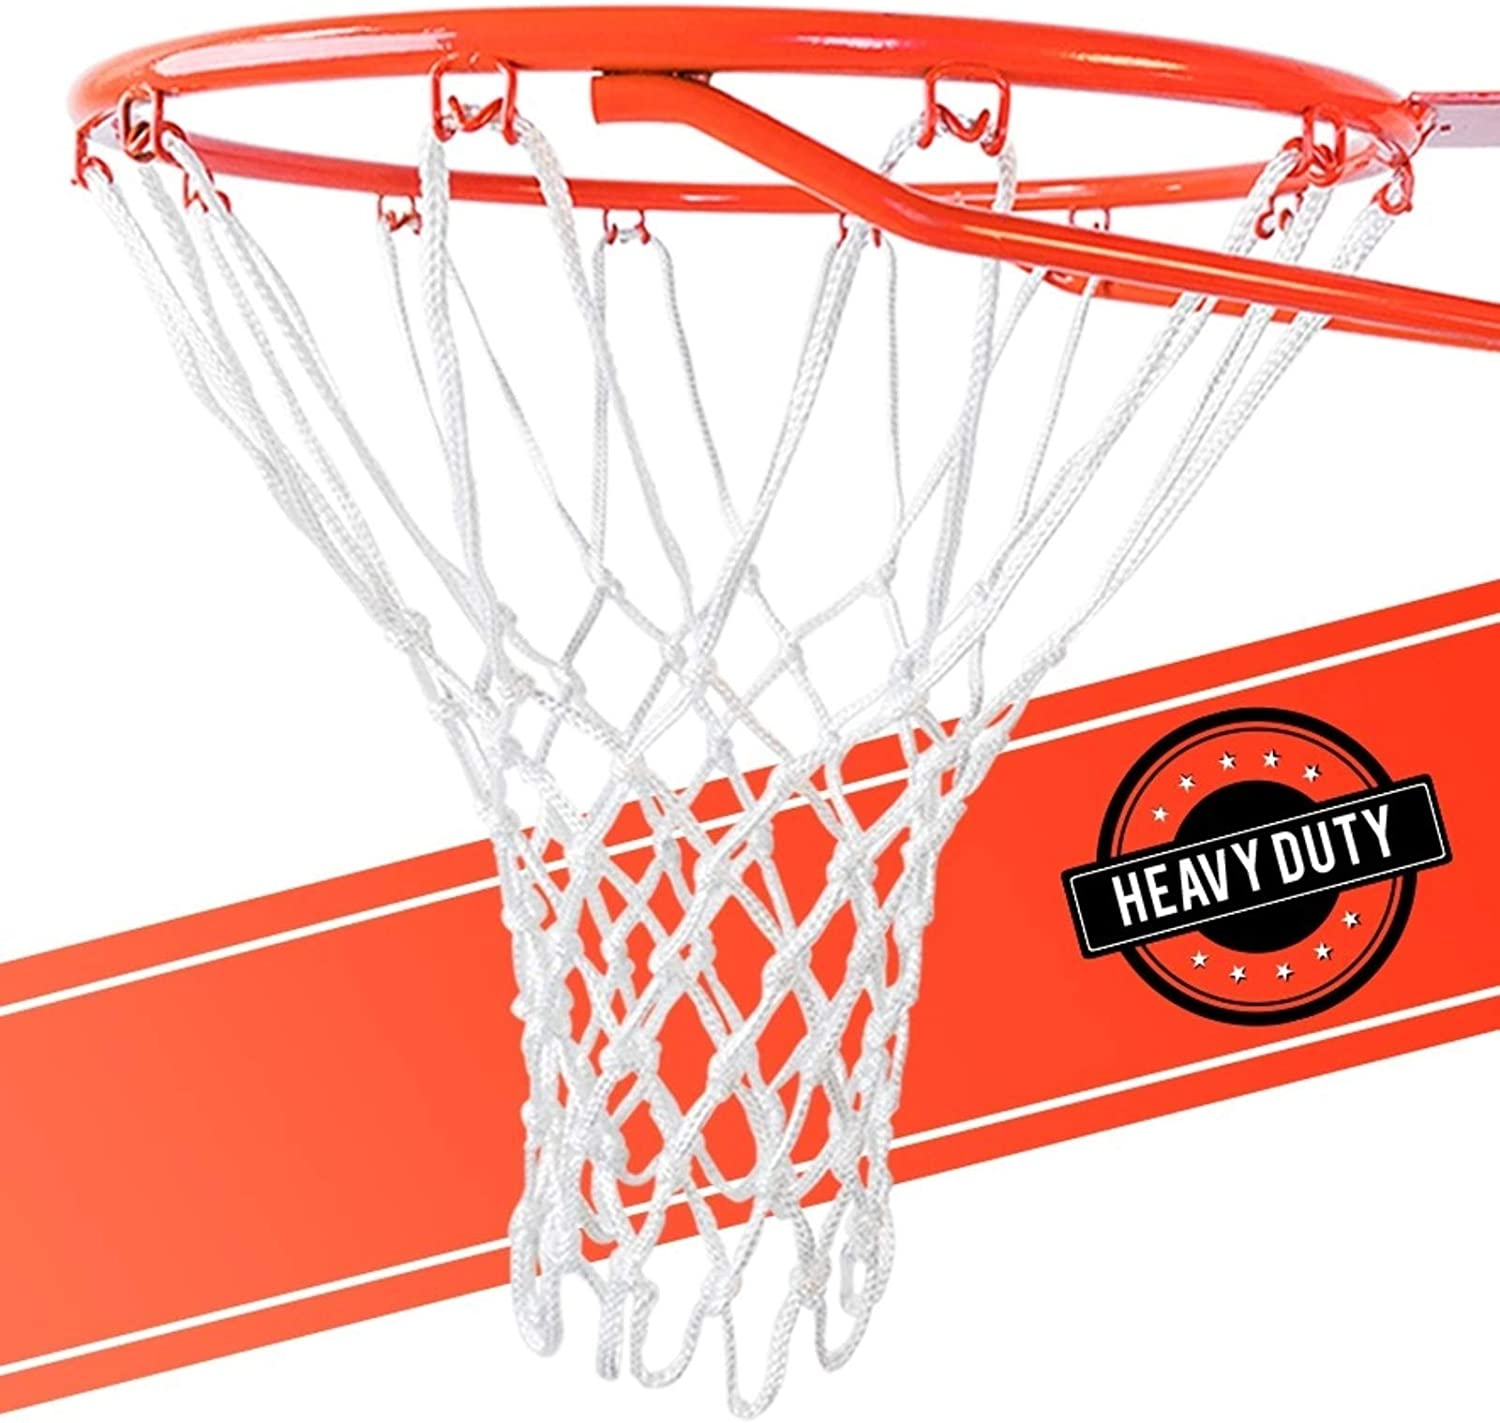 ULTRA Heavy Duty Basketball Net Replacement - All Weather Anti Whip, Fits Standard Indoor or Outdoor Rims - White, 12 Loops : Sports & Outdoors